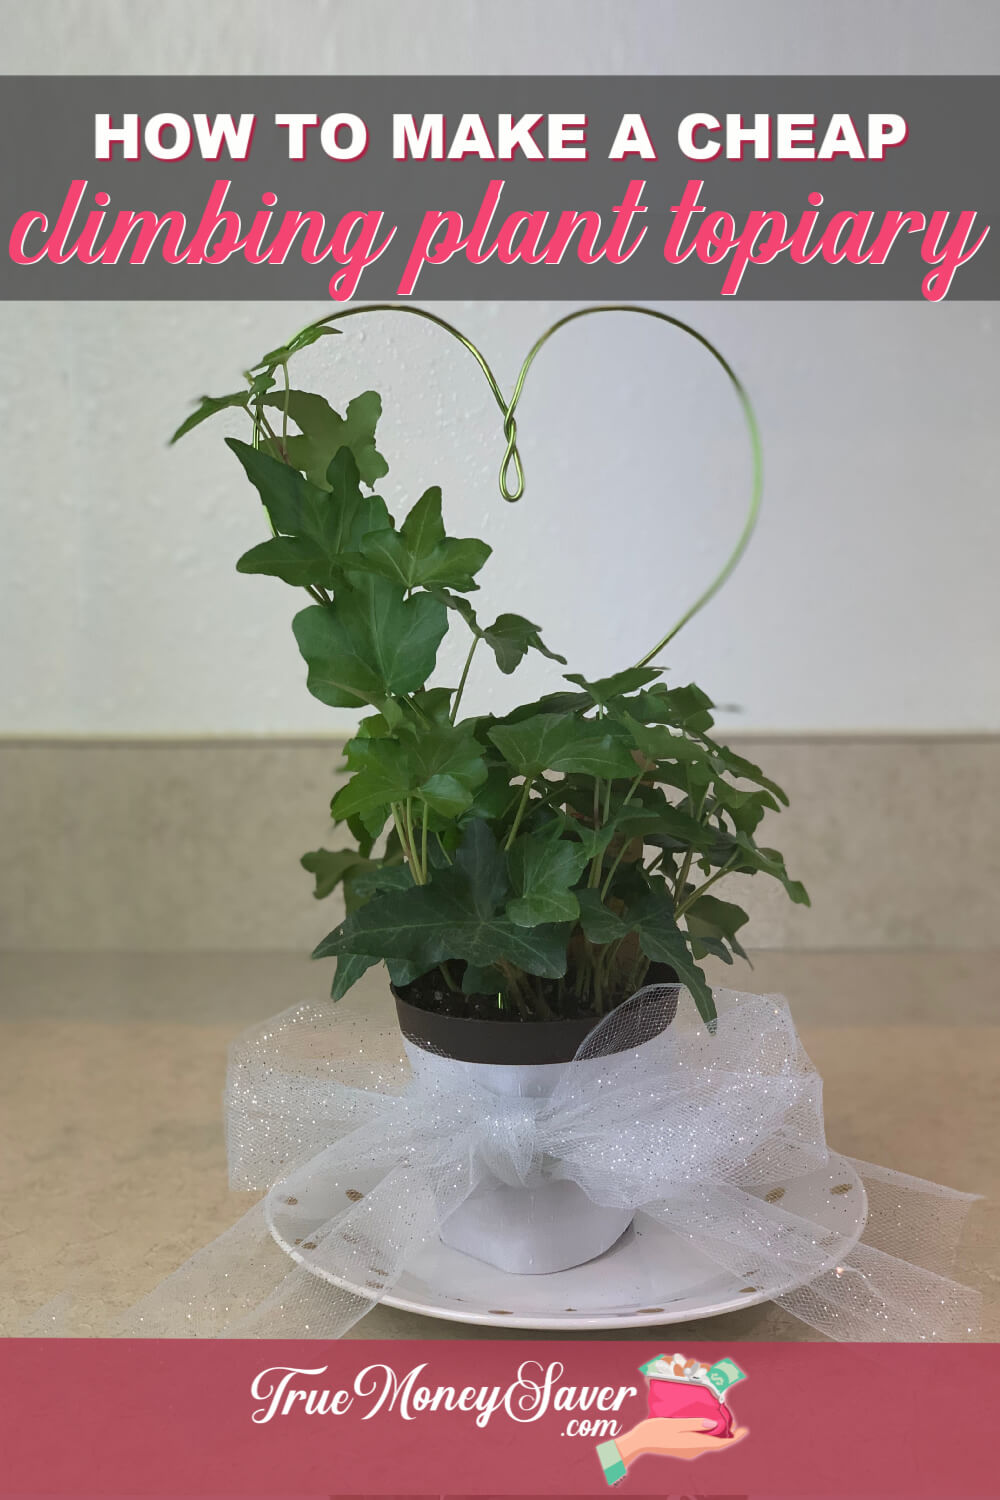 If you are looking for a green gift, look no further! This  DIY Indoor Topiary Plant Gift is the best gift this year! I\'ll show you how to make an indoor topiary and some more DIY topiary ideas for giving! These topiary gifts are going to be a big hit! Let\'s get started! 